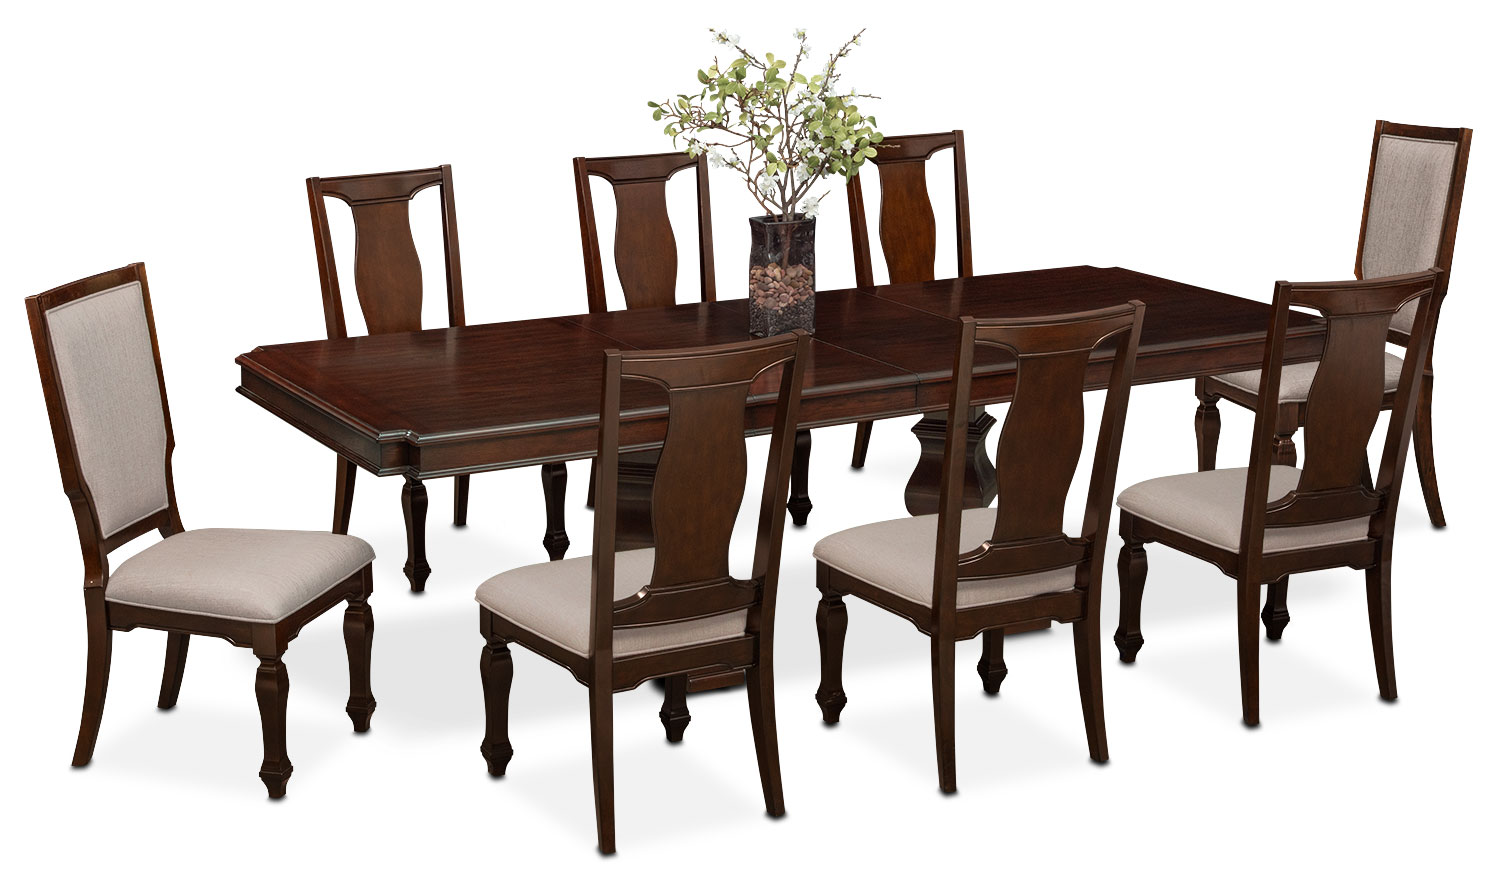 Vienna Dining Table, 6 Side Chairs And 2 Upholstered Side Chairs   Merlot